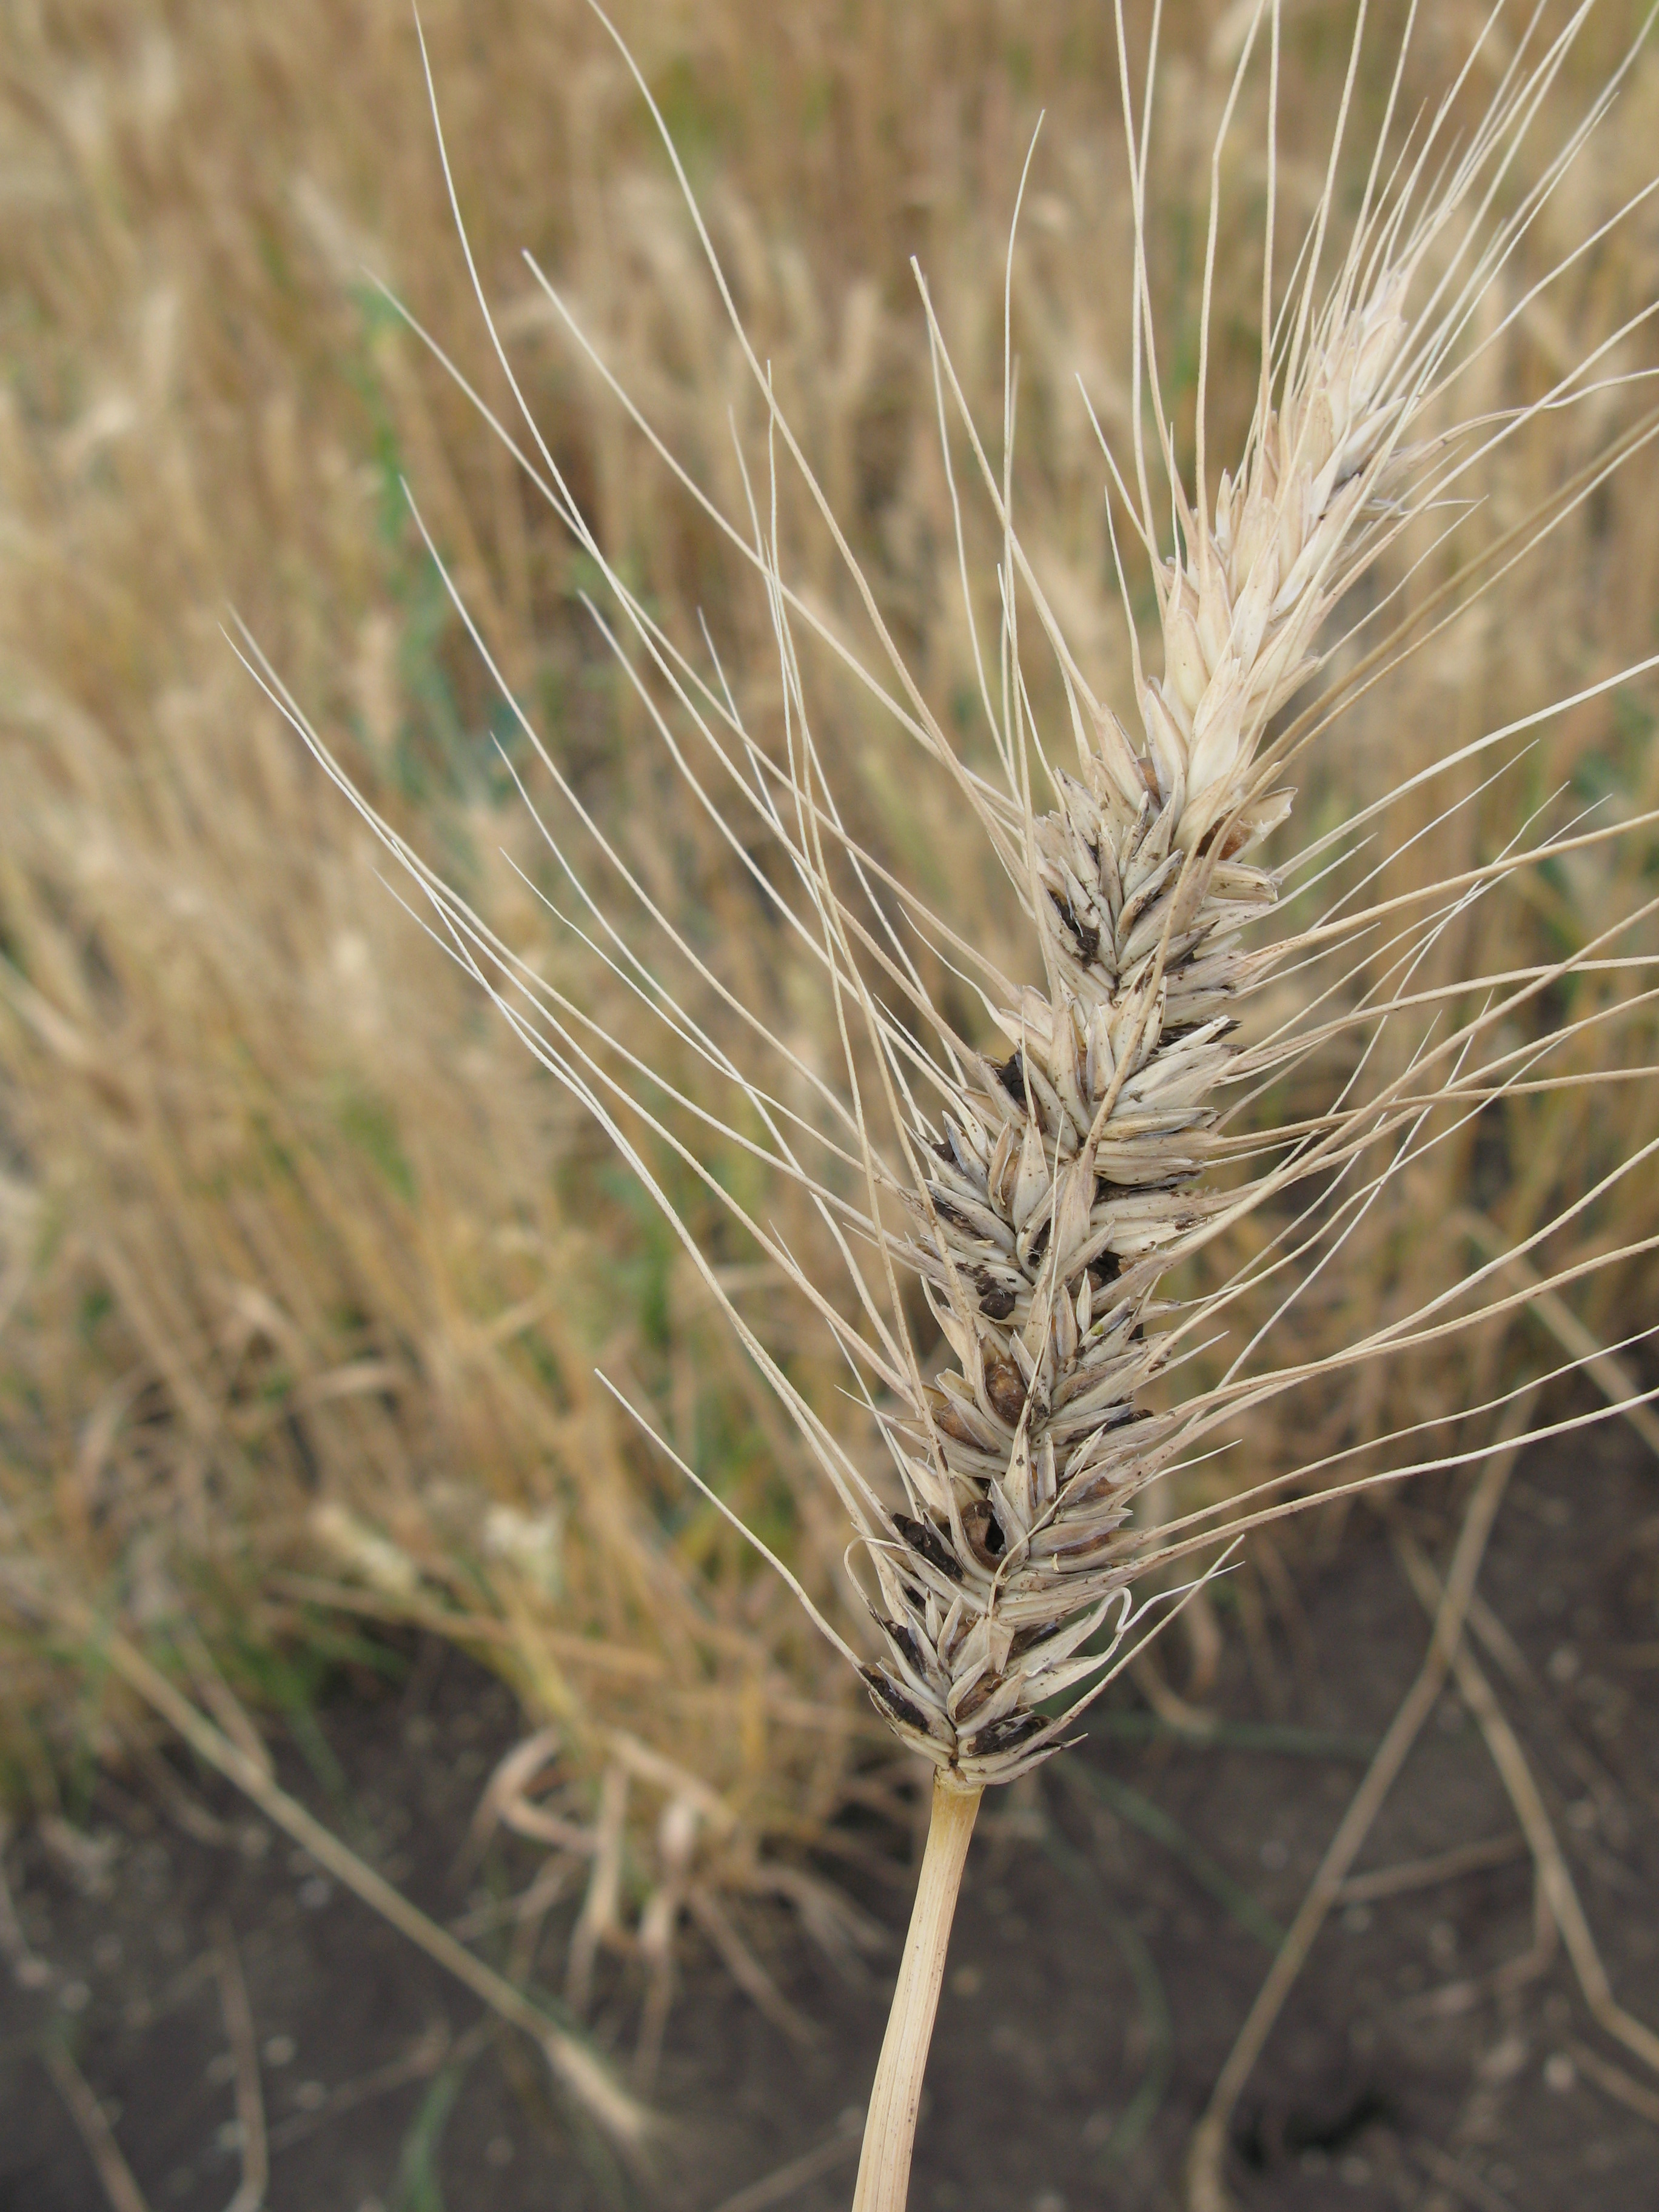 Infected wheat head with dwarf bunt signs.